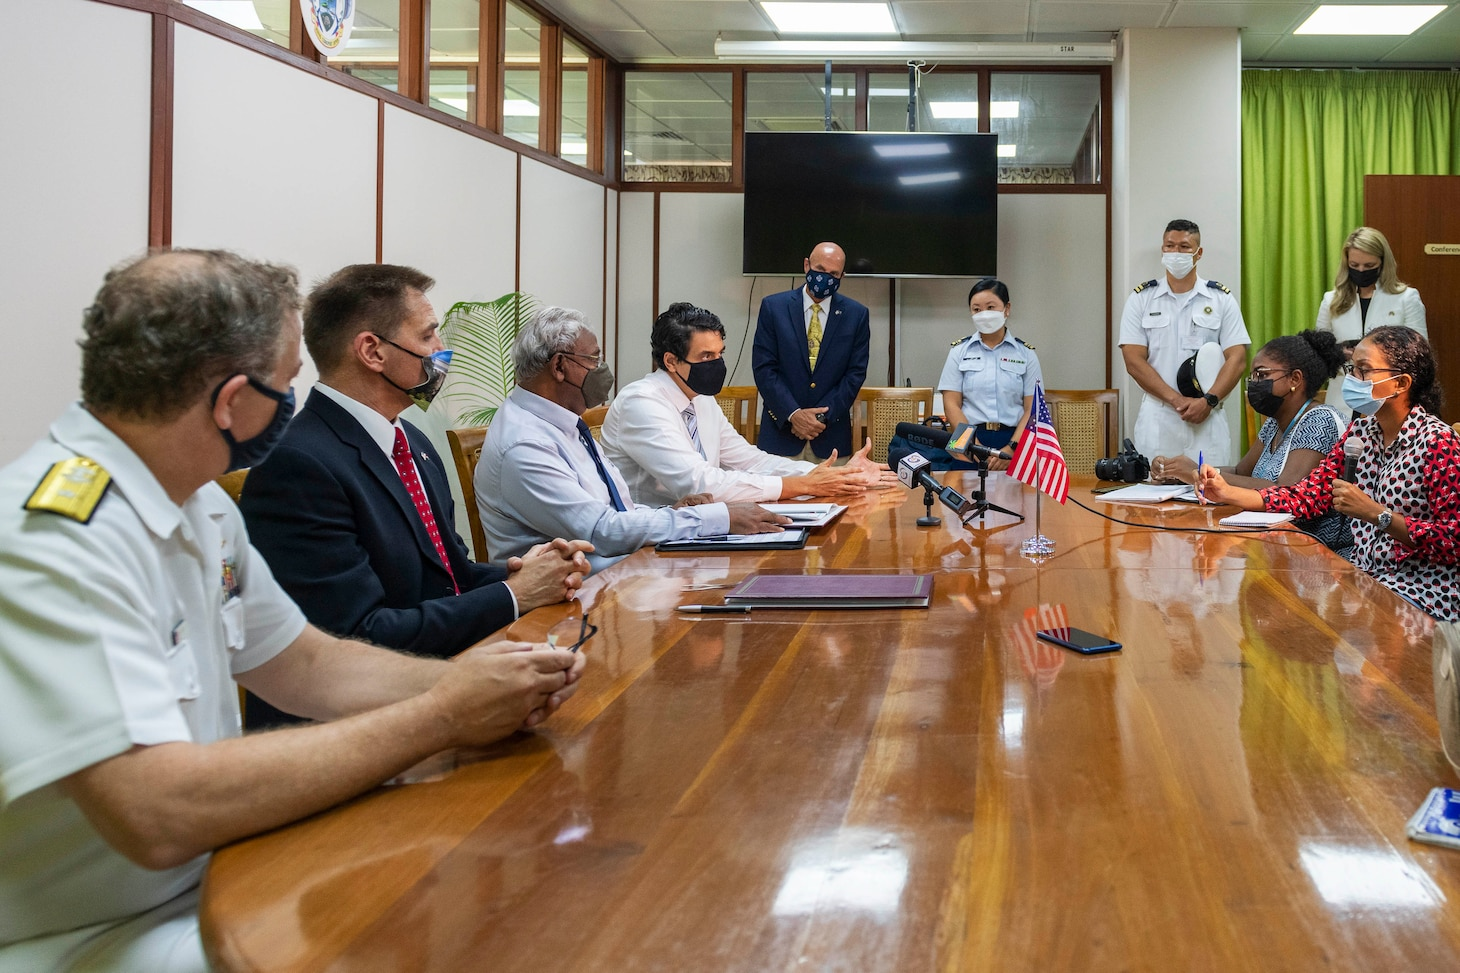 (July 27, 2021) Rear Adm. Jeffrey Spivey, director, Maritime Partnership Program, U.S Naval Forces Europe-Africa, left, U.S. Embassy Acting Deputy Chief of Mission Thom Kohl, center left, and Seychelles Minister for Internal Affairs, Errol Fonseka, attends the official signing of the bilateral agreement between the United States and Seychellois Governments on Countering Illicit Transnational Maritime Activity Operations in conjunction with exercise Cutlass Express 21, July 27, 2021 at the Independence House Annex in Seychelles. This is the first bilateral maritime Agreement between the United States and an East African country.